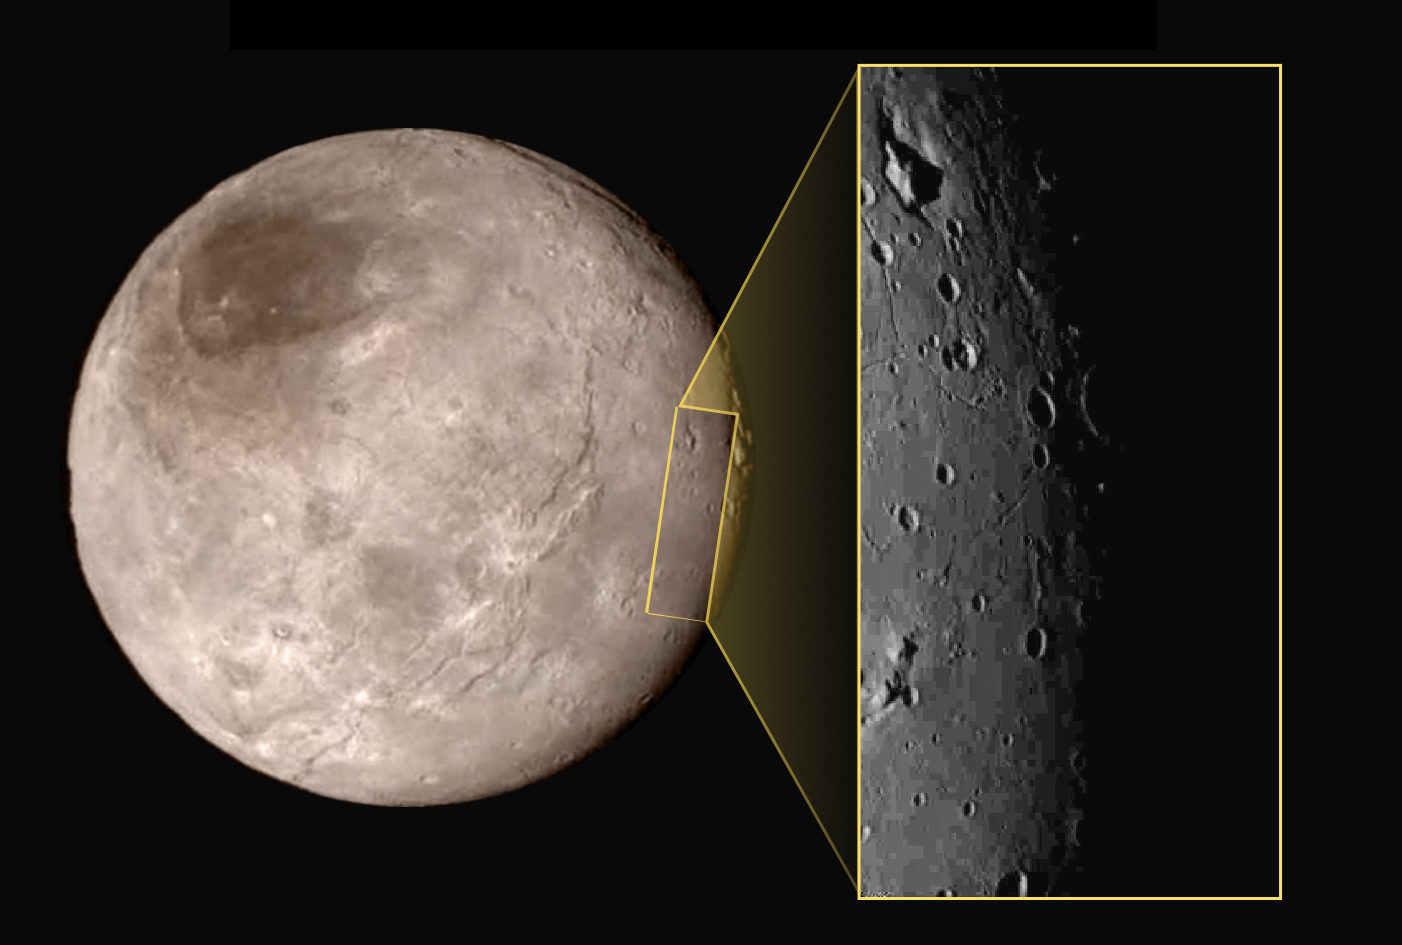 New Horizons - Charon - Cratères et pics - LORRI - 14-07-2015 - NASA - Annonec NASA TV briefing - Science findings - Johns Hopkins University Applied Physics Laboratory - Southwest Research Institute